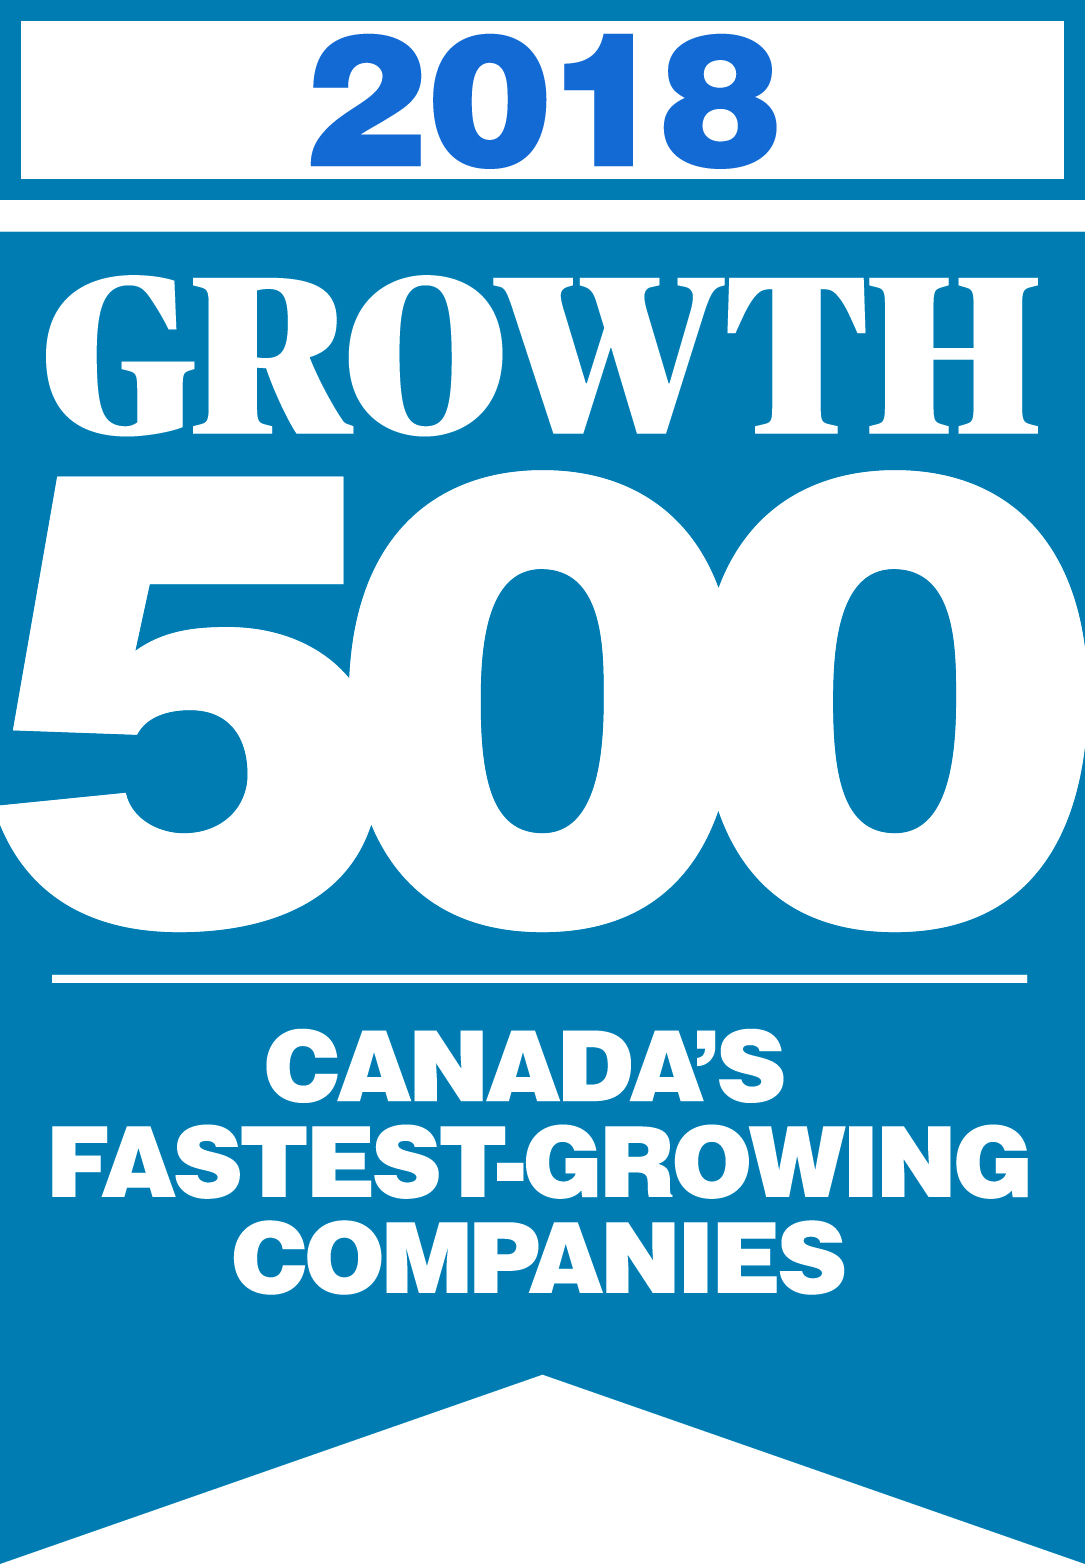 Growth 500 Logo 2018 Blue.jpg